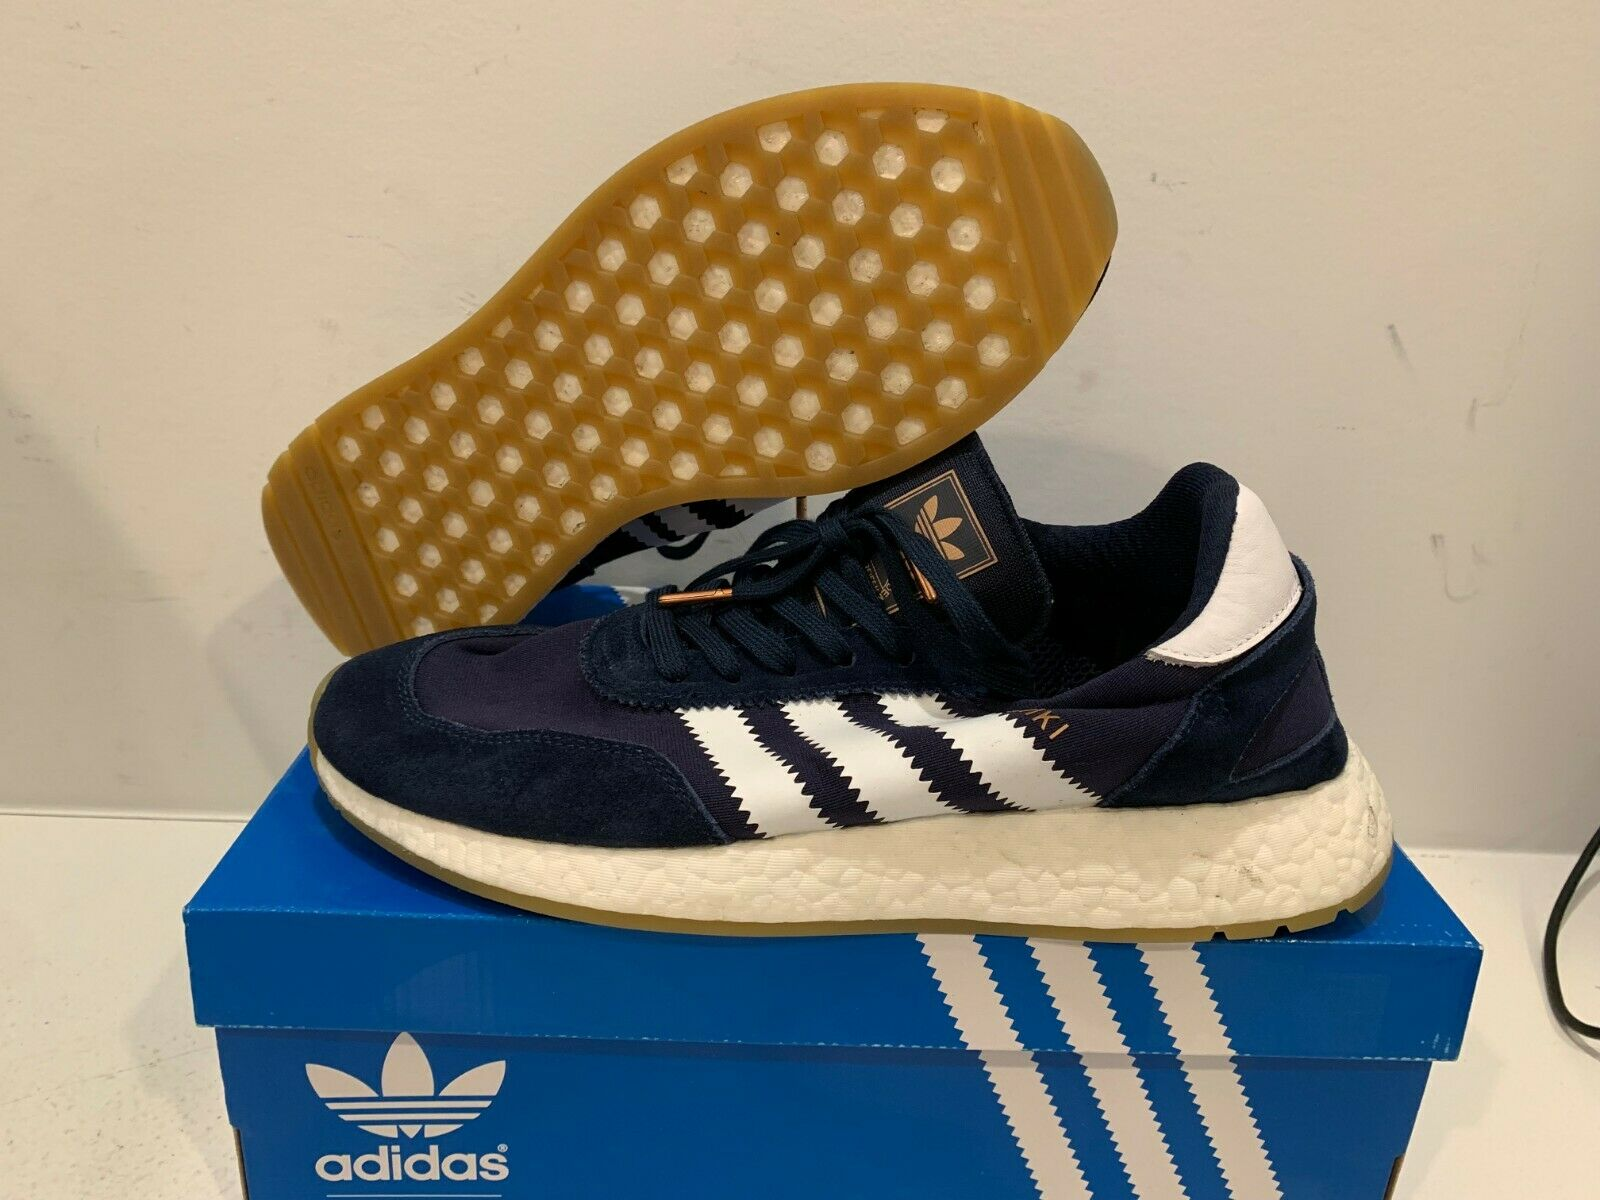 Adidas Iniki Runner  Collegiate Navy  Size 9.5 (Offer)